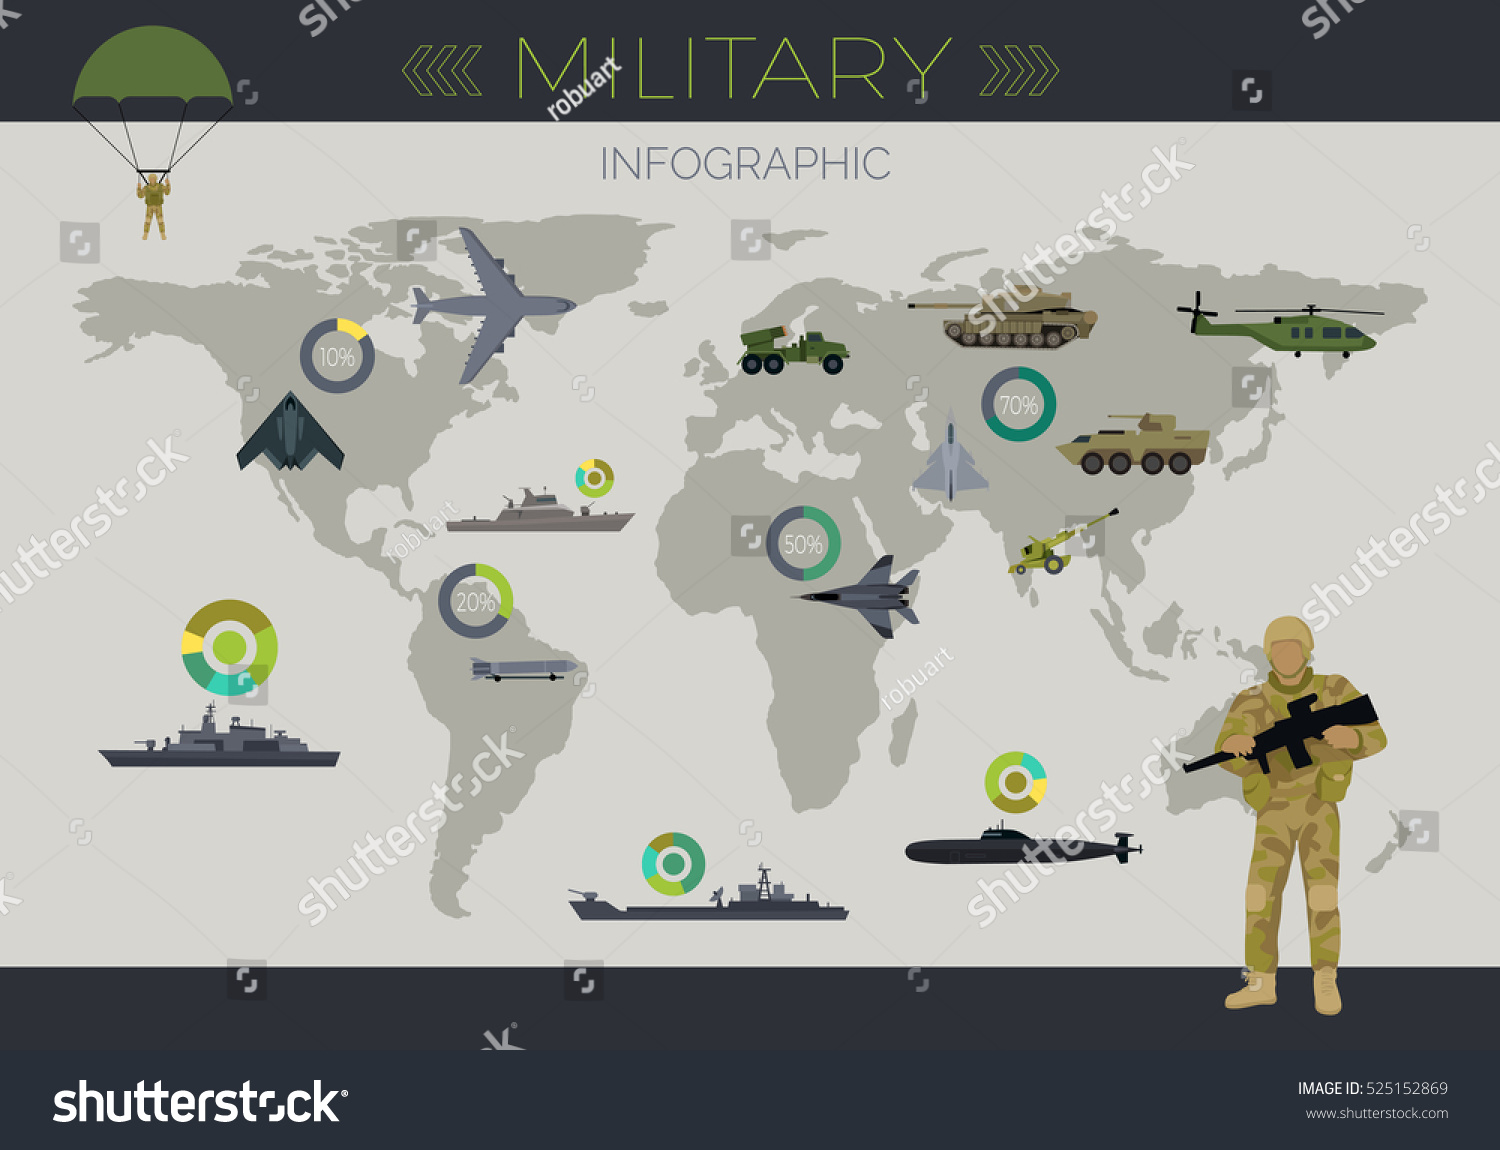 Military Infographic Different Armed Forces Type Stock Vector Diagrams Of With Data And Circular On World Map Flat